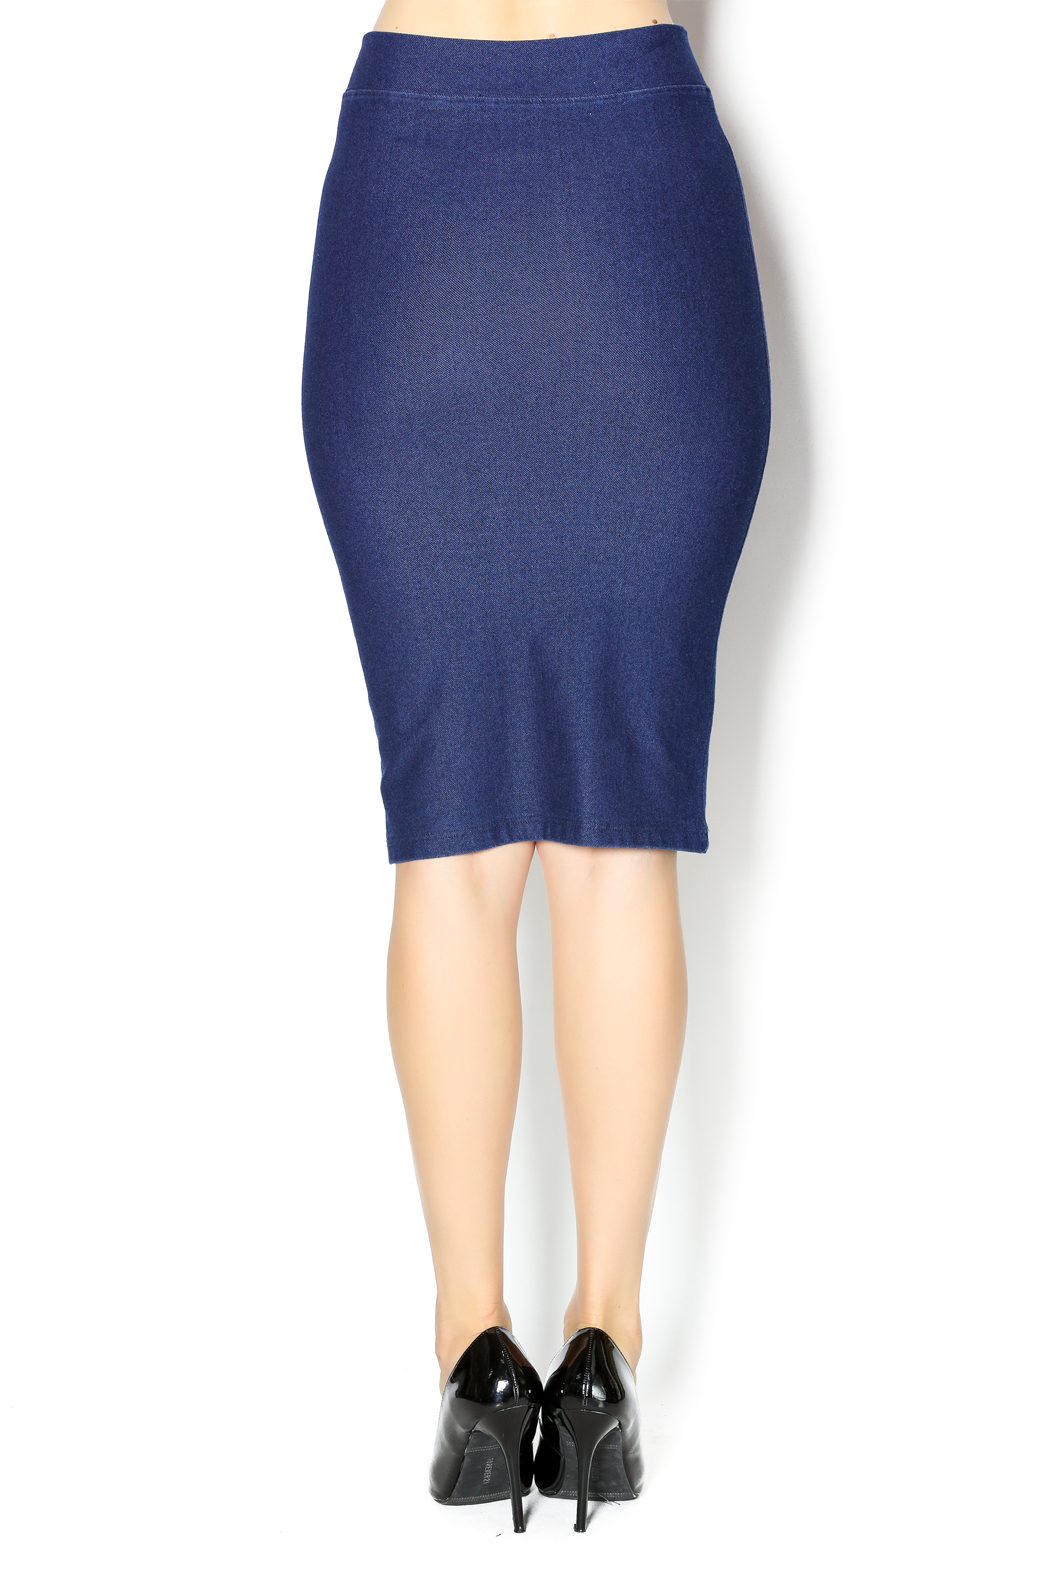 KIKI RIKI Faux Denim Pencil Skirt - Back Cropped Image